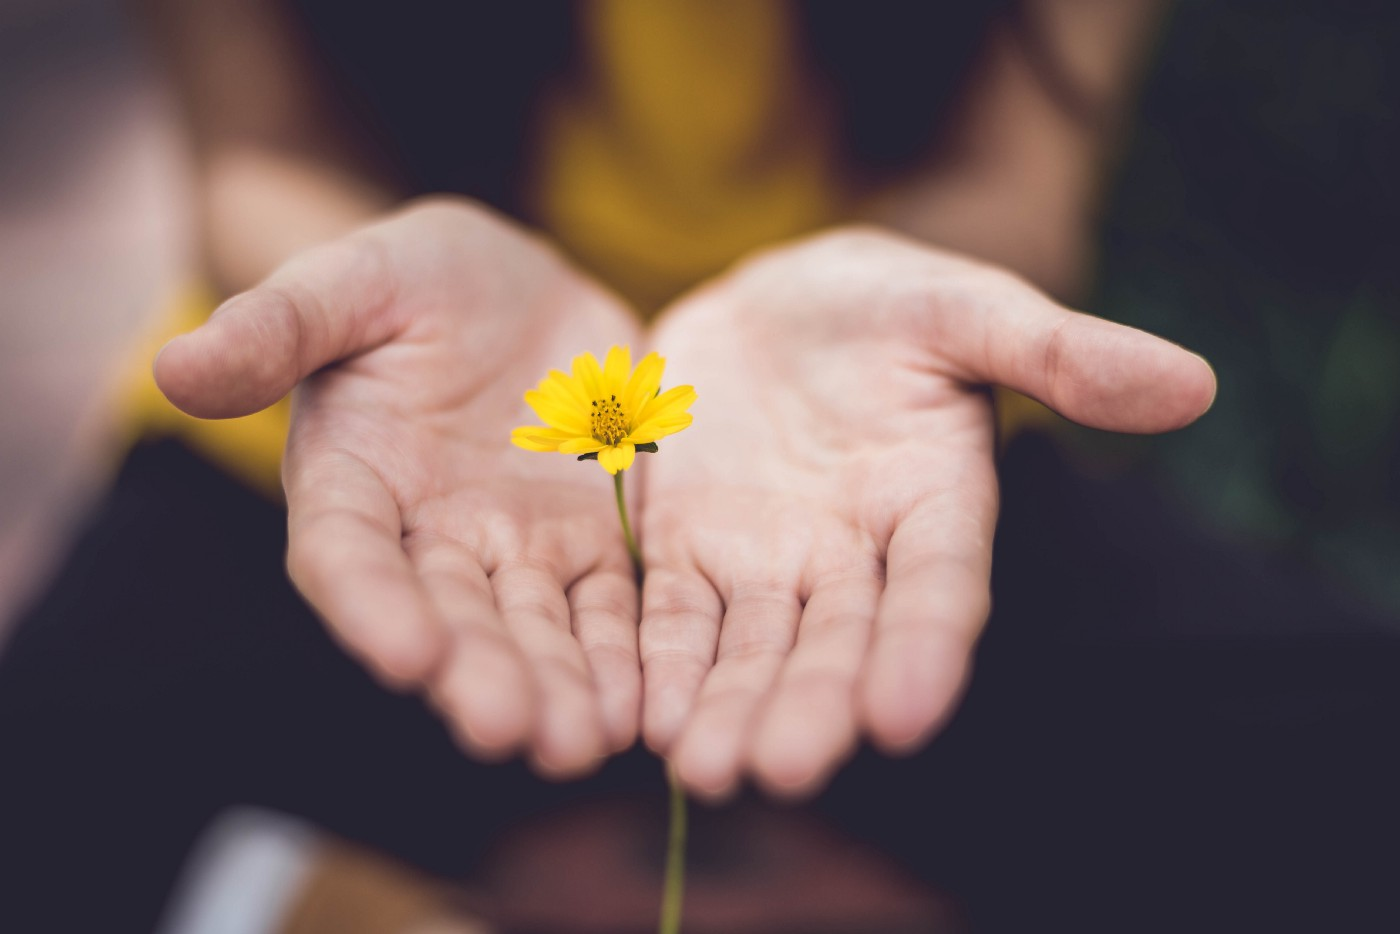 A woman holds out a bright yellow flower as an act of self-care.